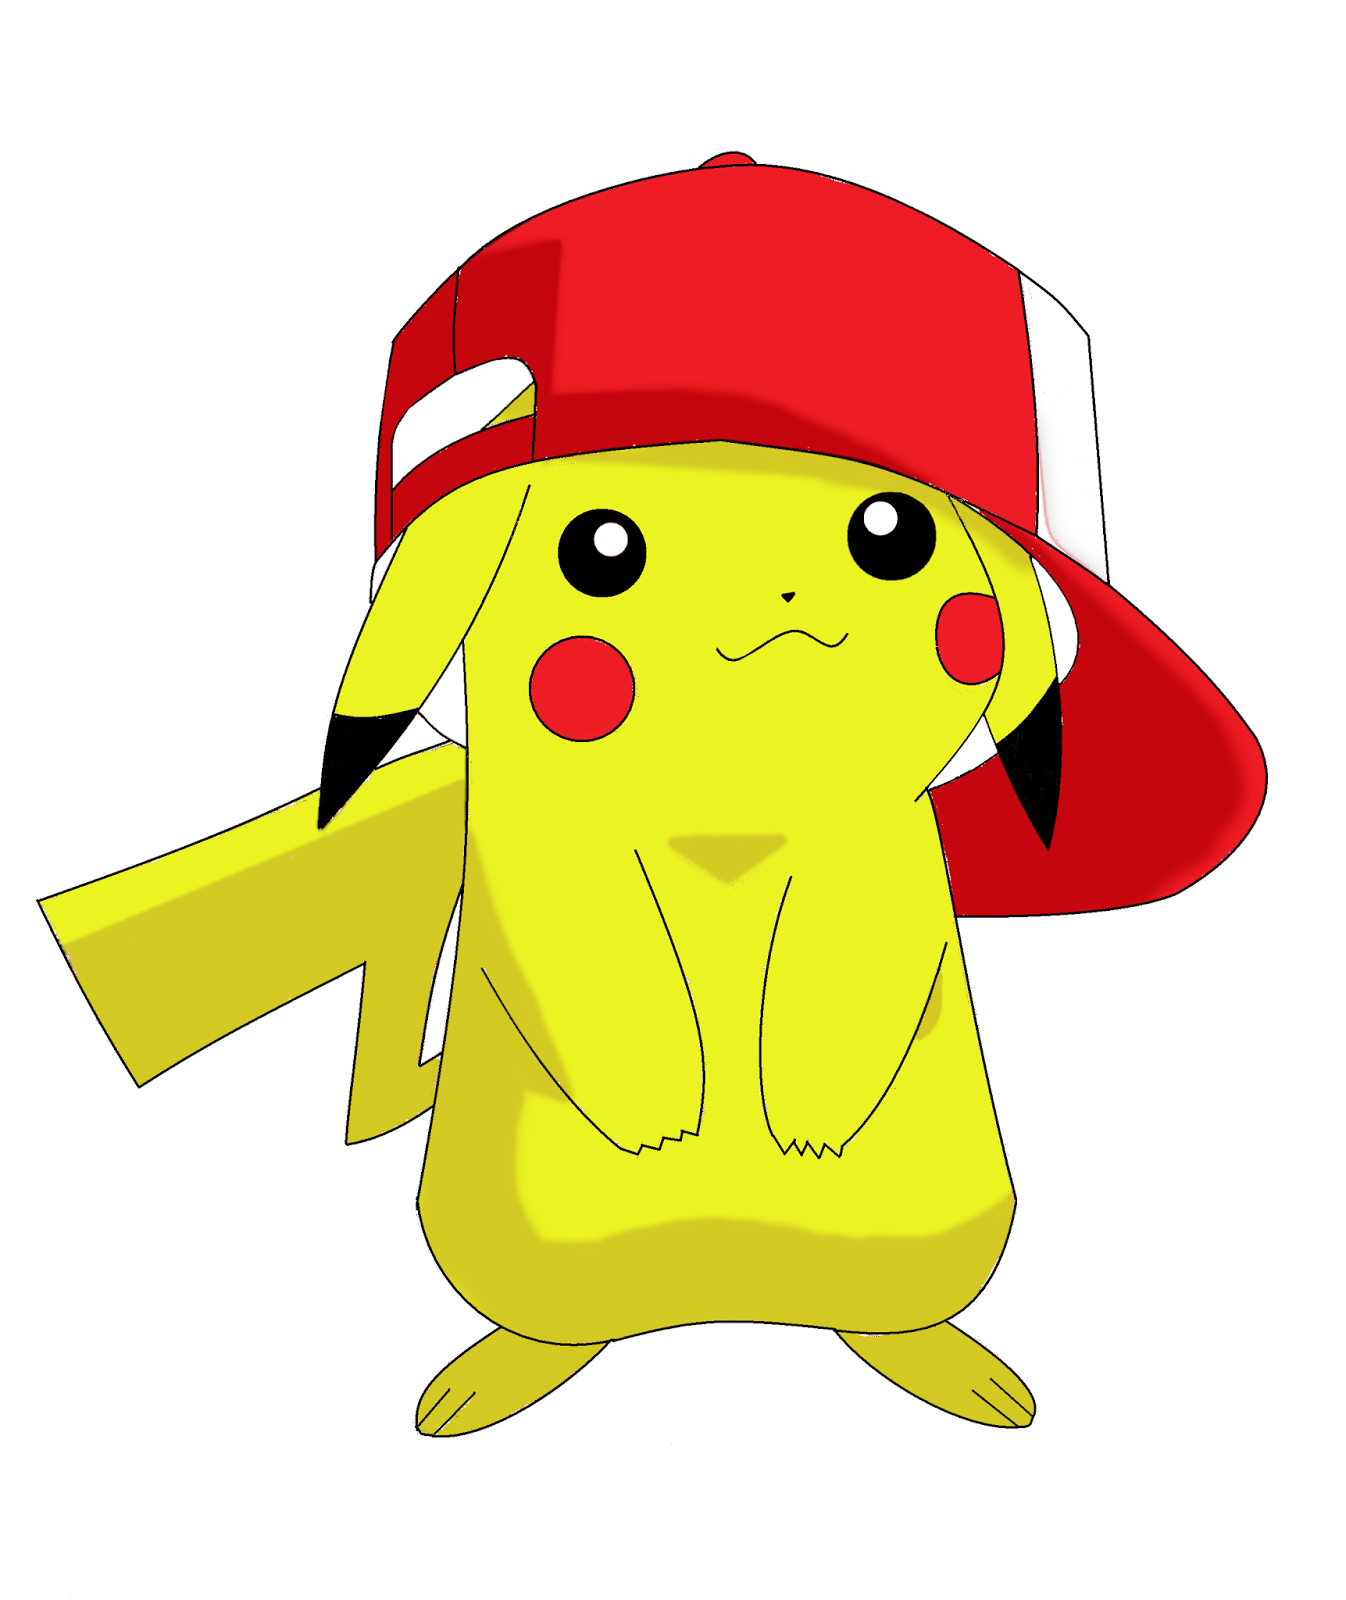 Pokemon Cosplay: Adorable Pokemmon Human Pikachu Cosplay Girl